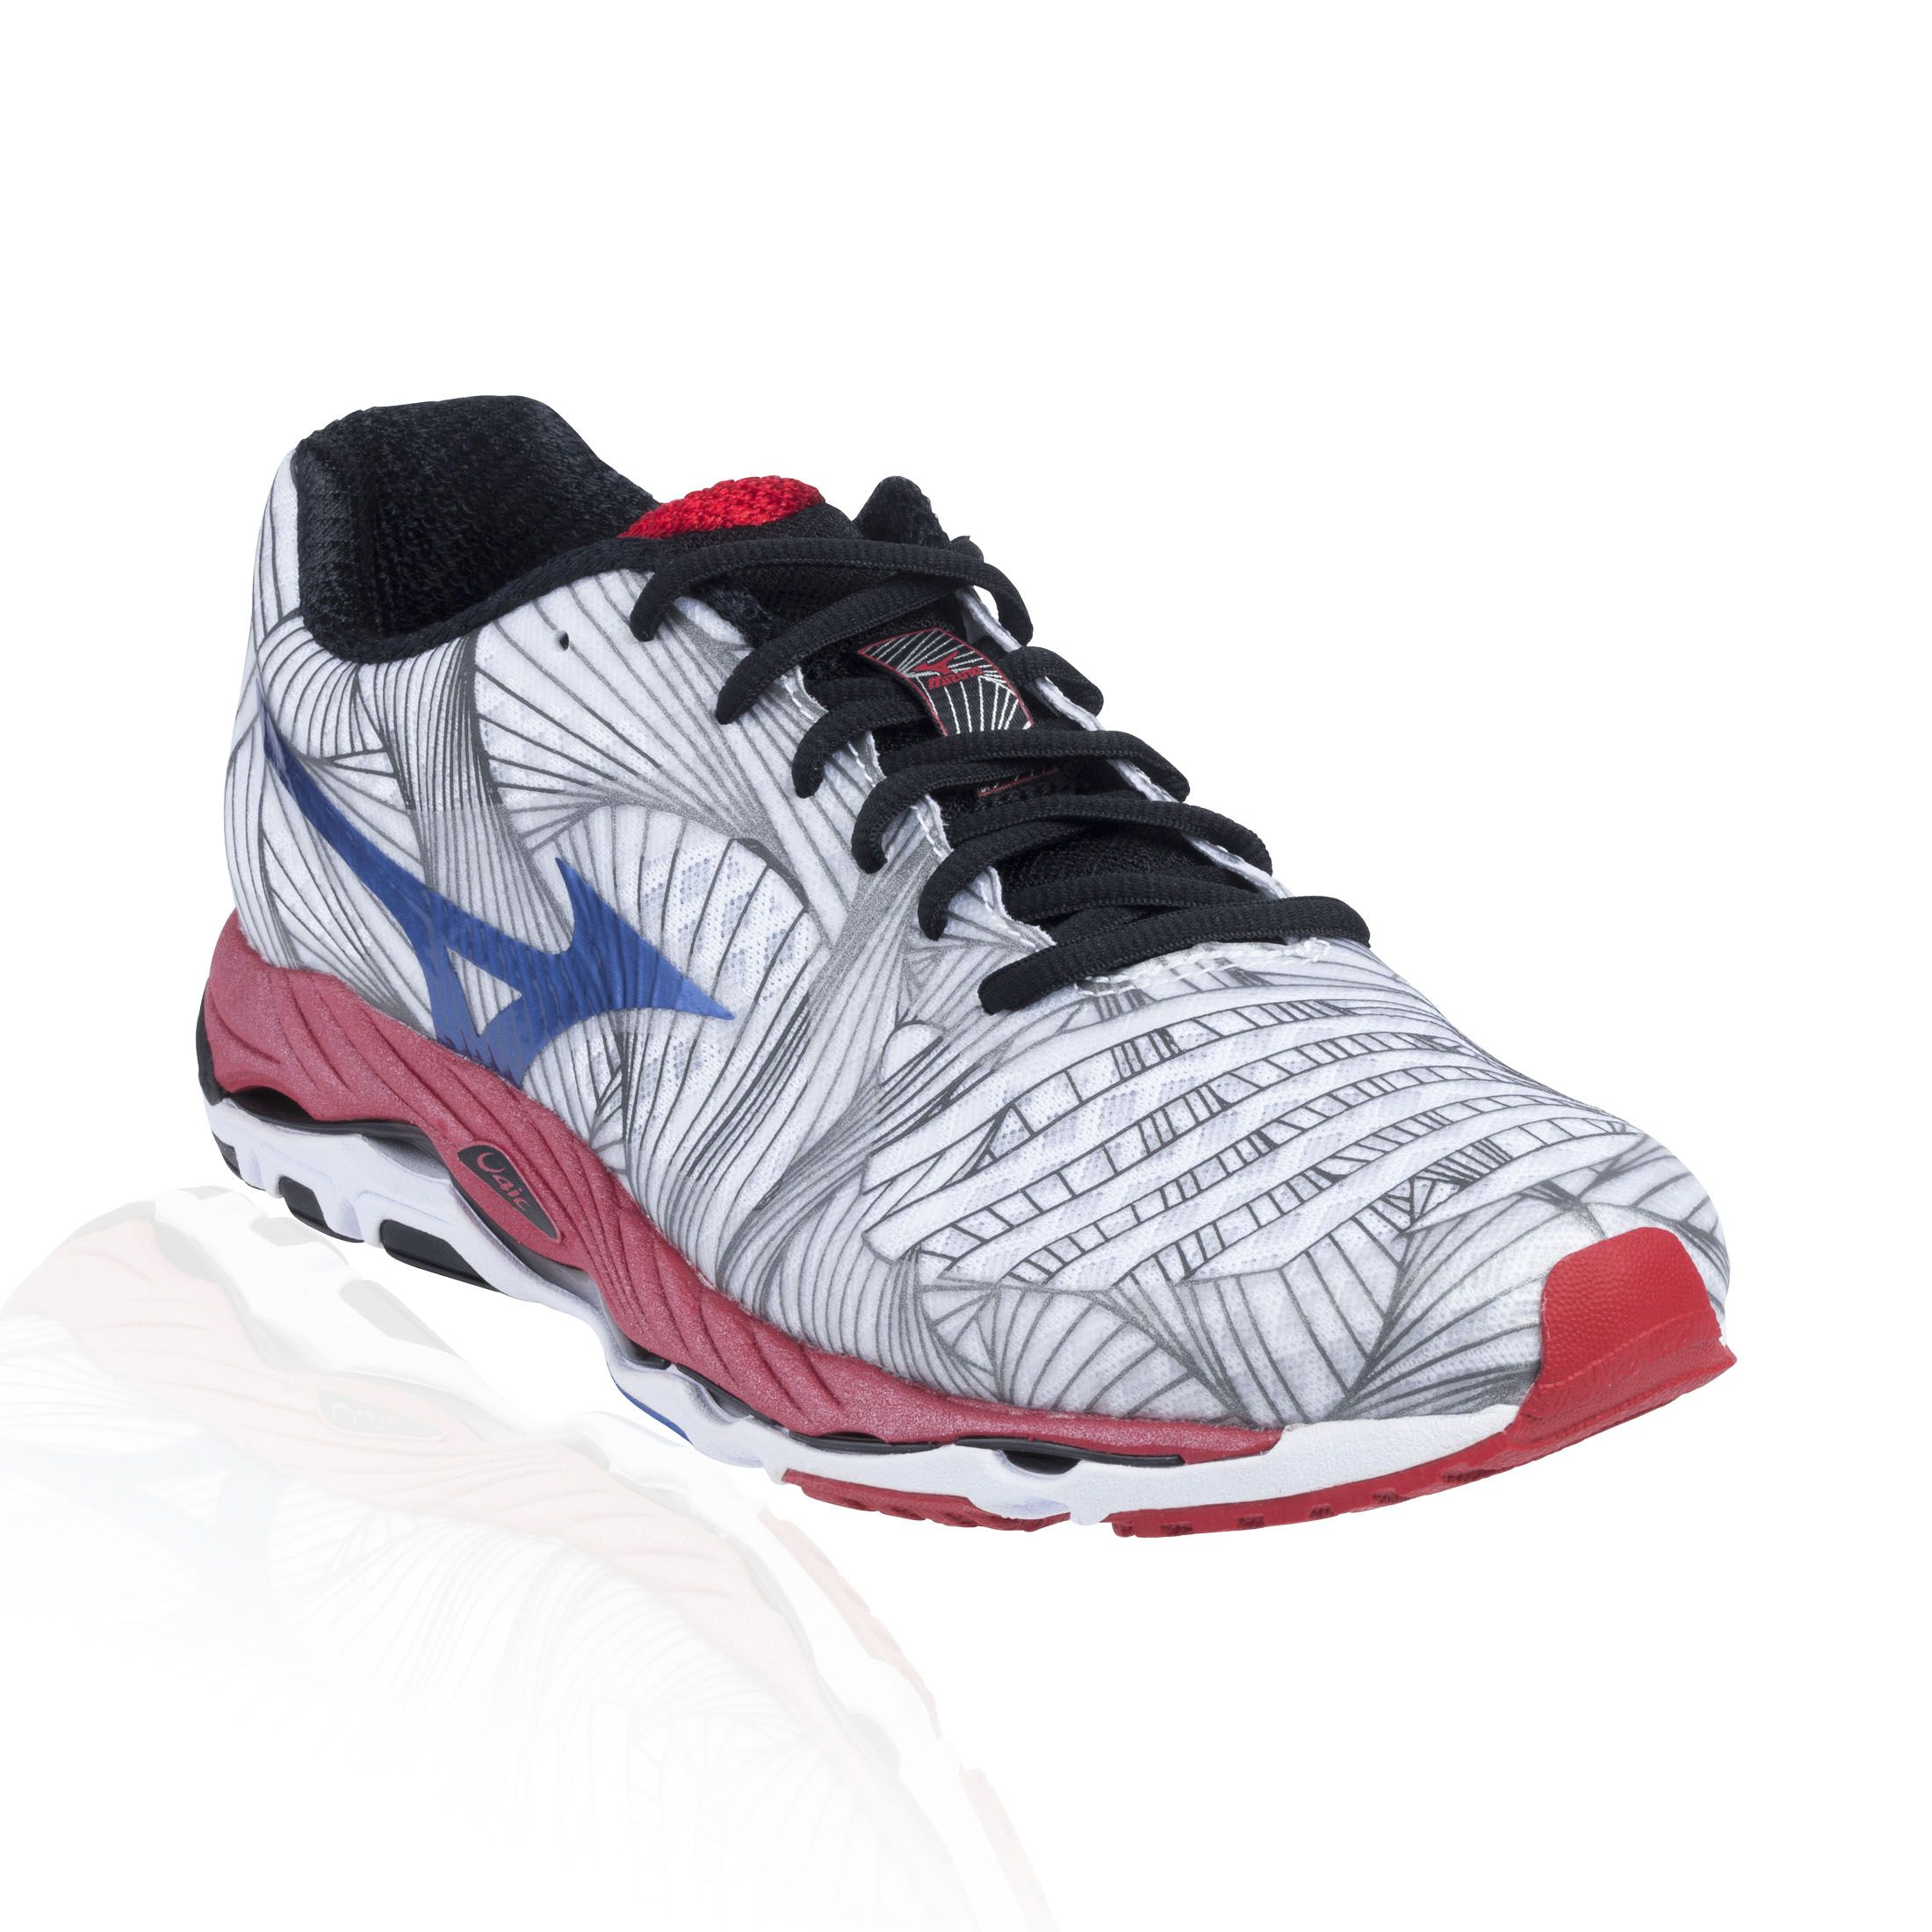 Mizuno Wave Paradox Running Shoe White Olympian Blue Chinese Red